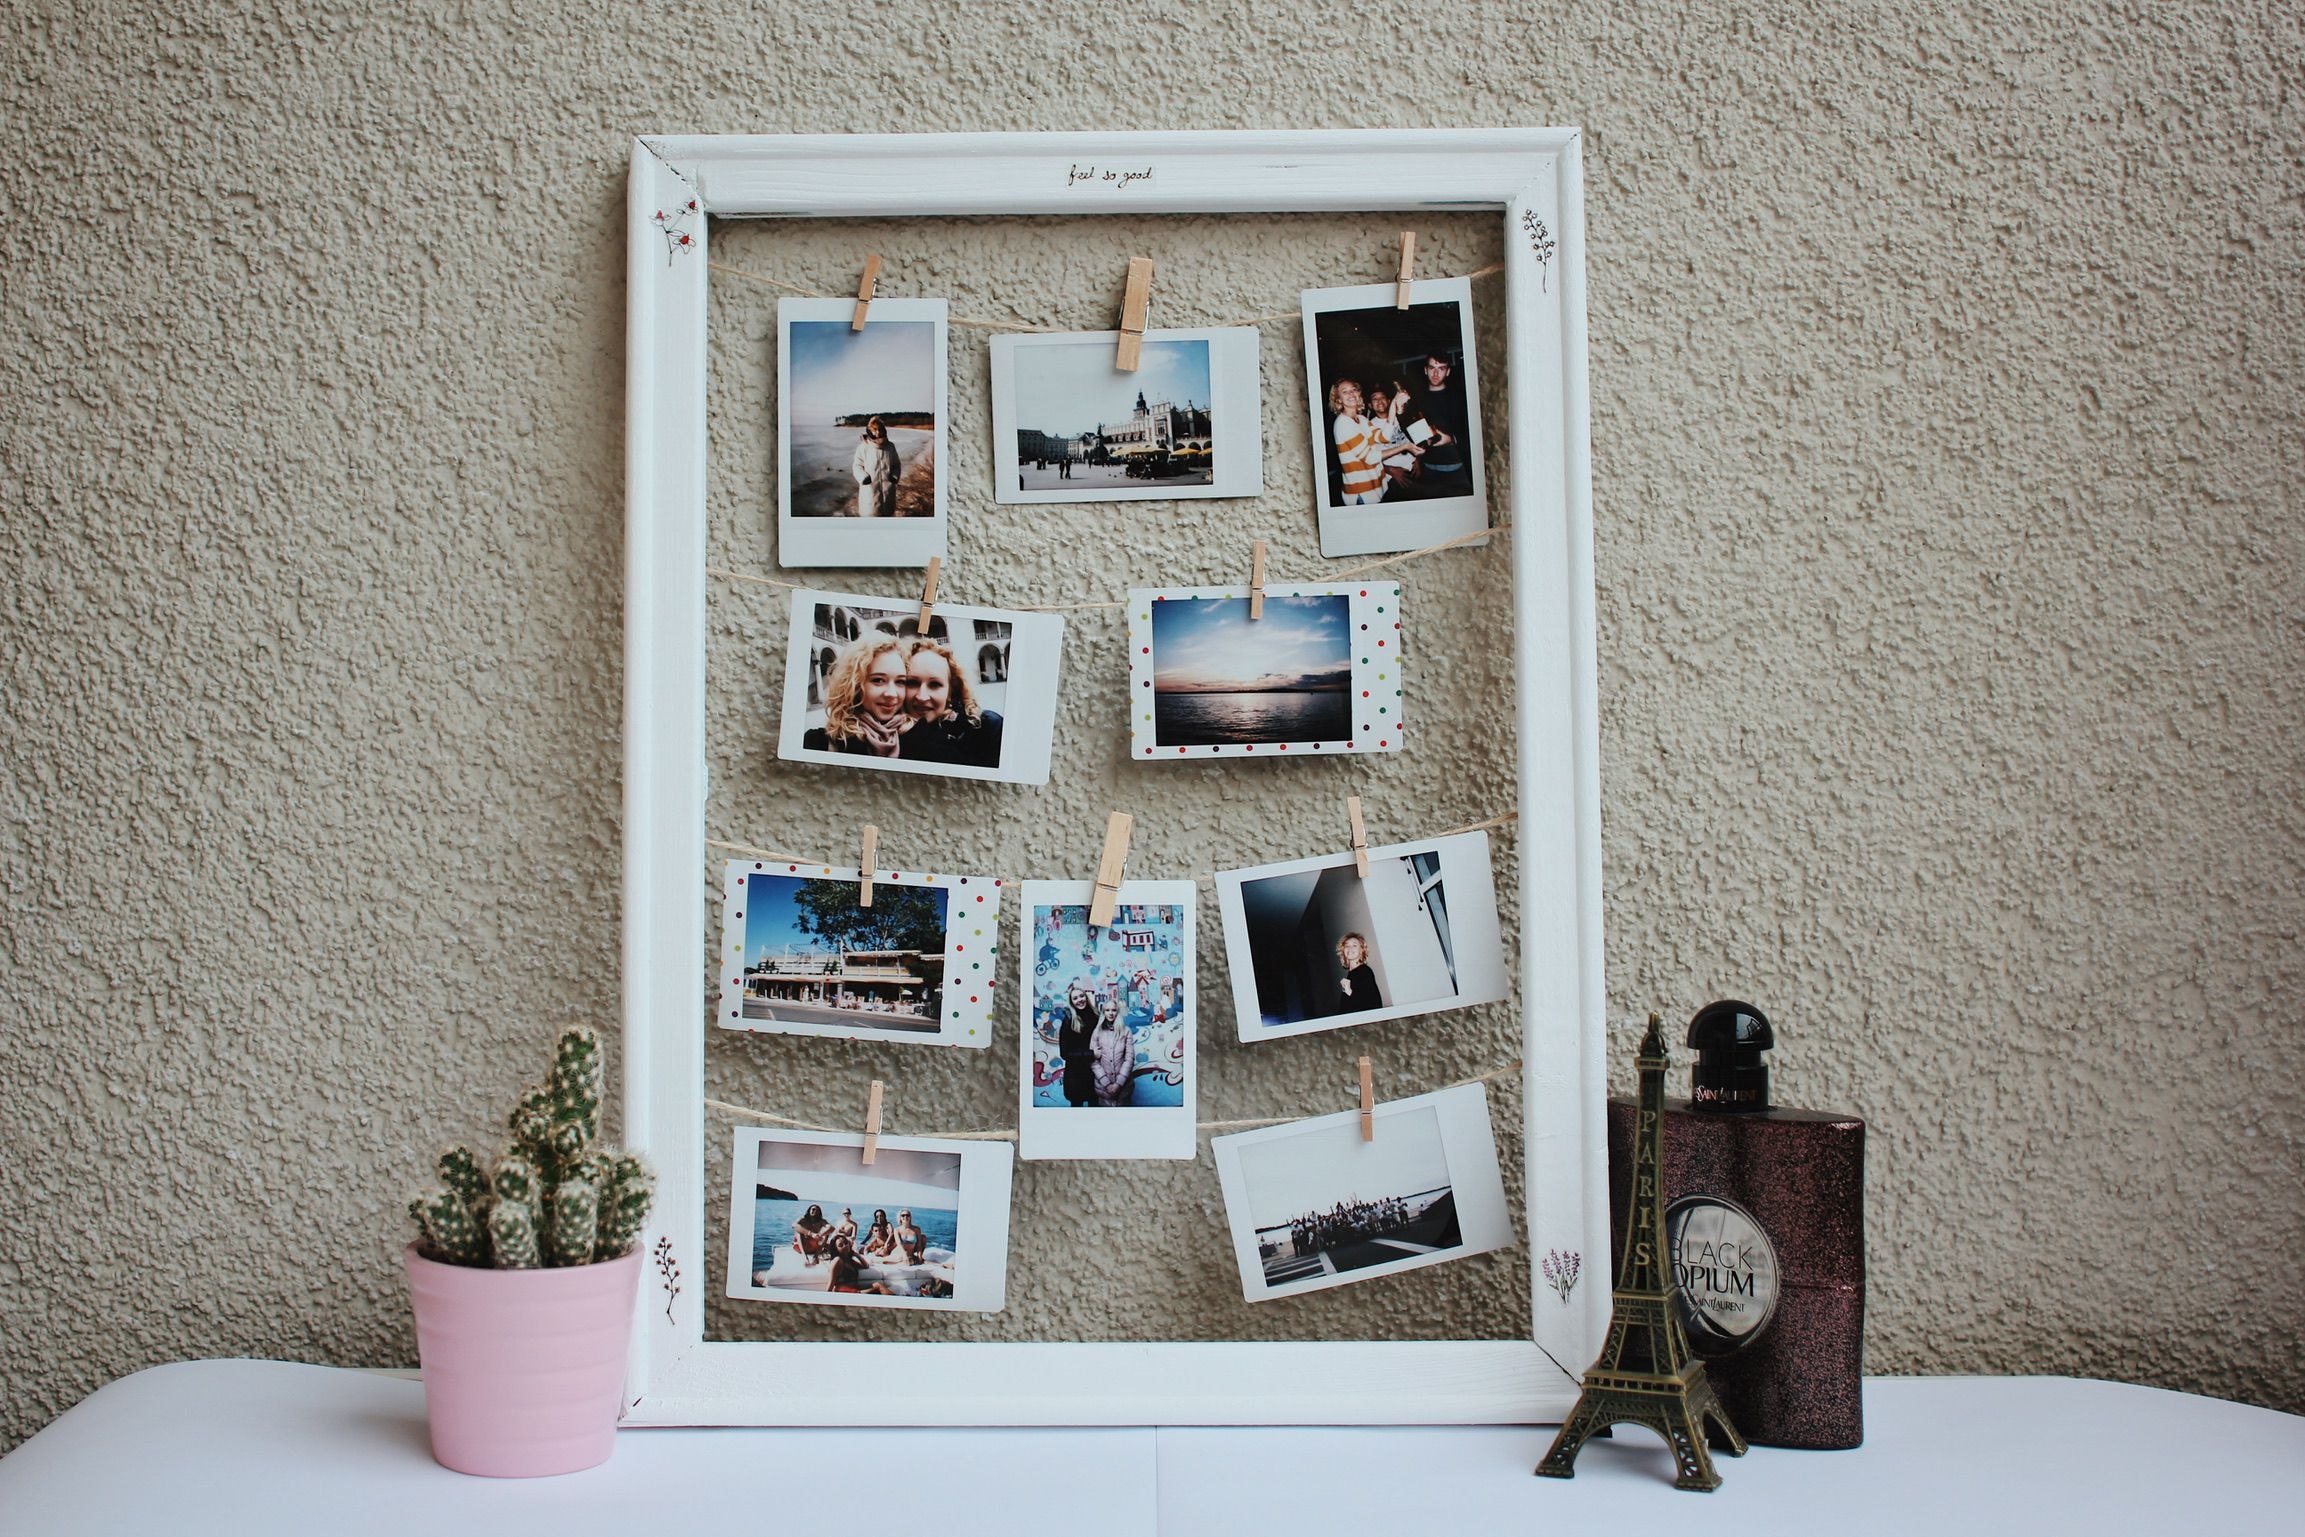 wooden decor interior diy minimal handicraft frame photo design